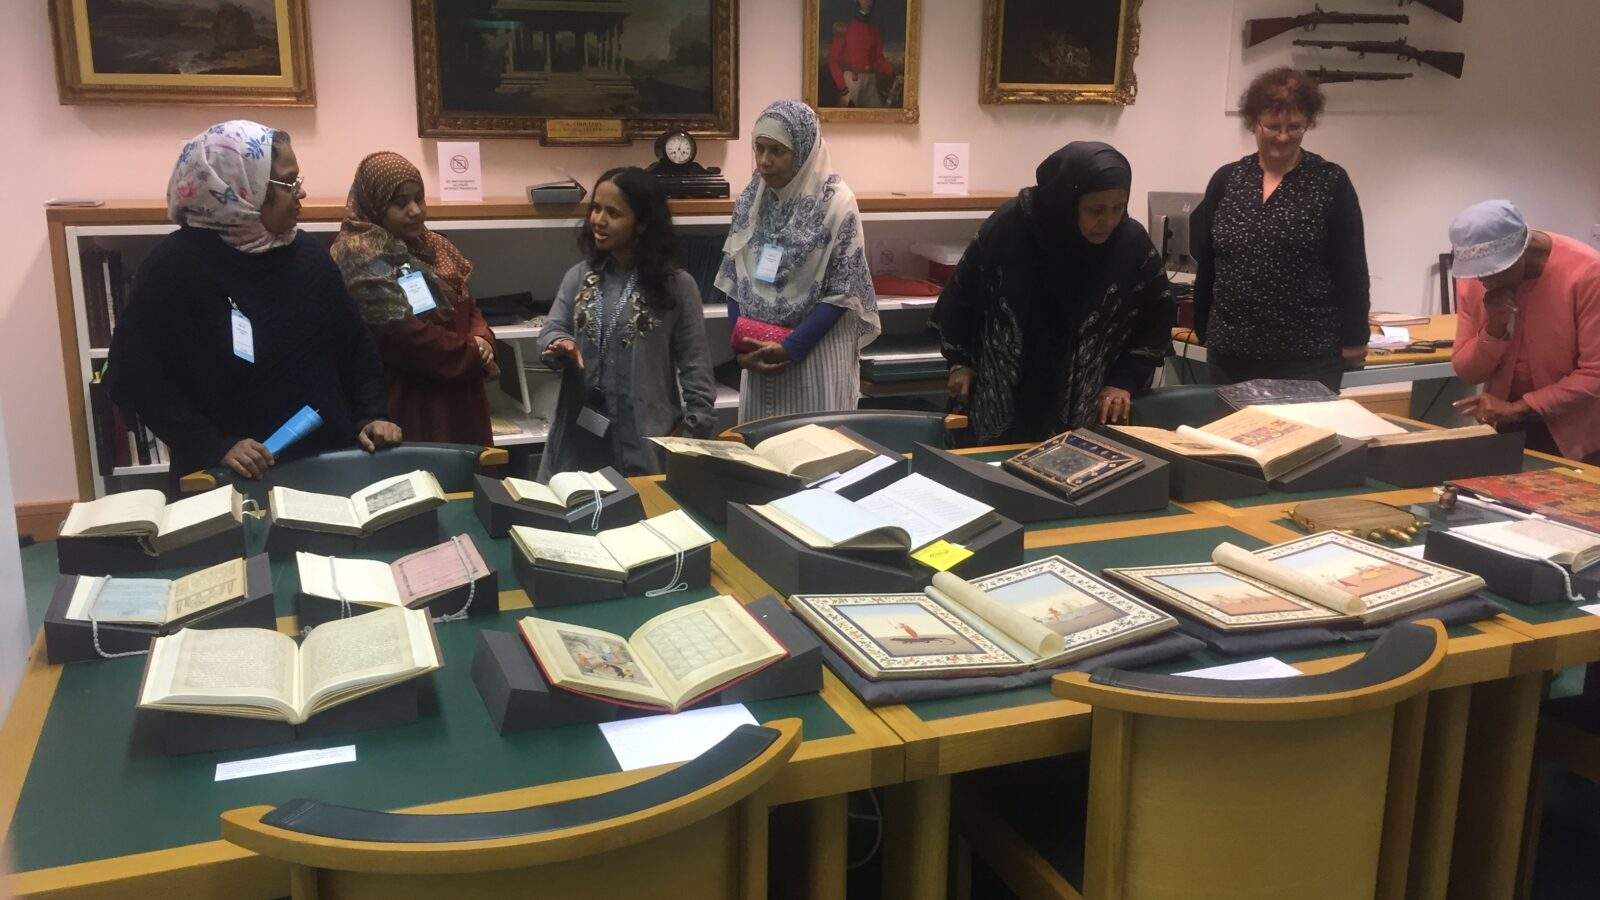 Women looking at ancient Bengali books laid out on a table